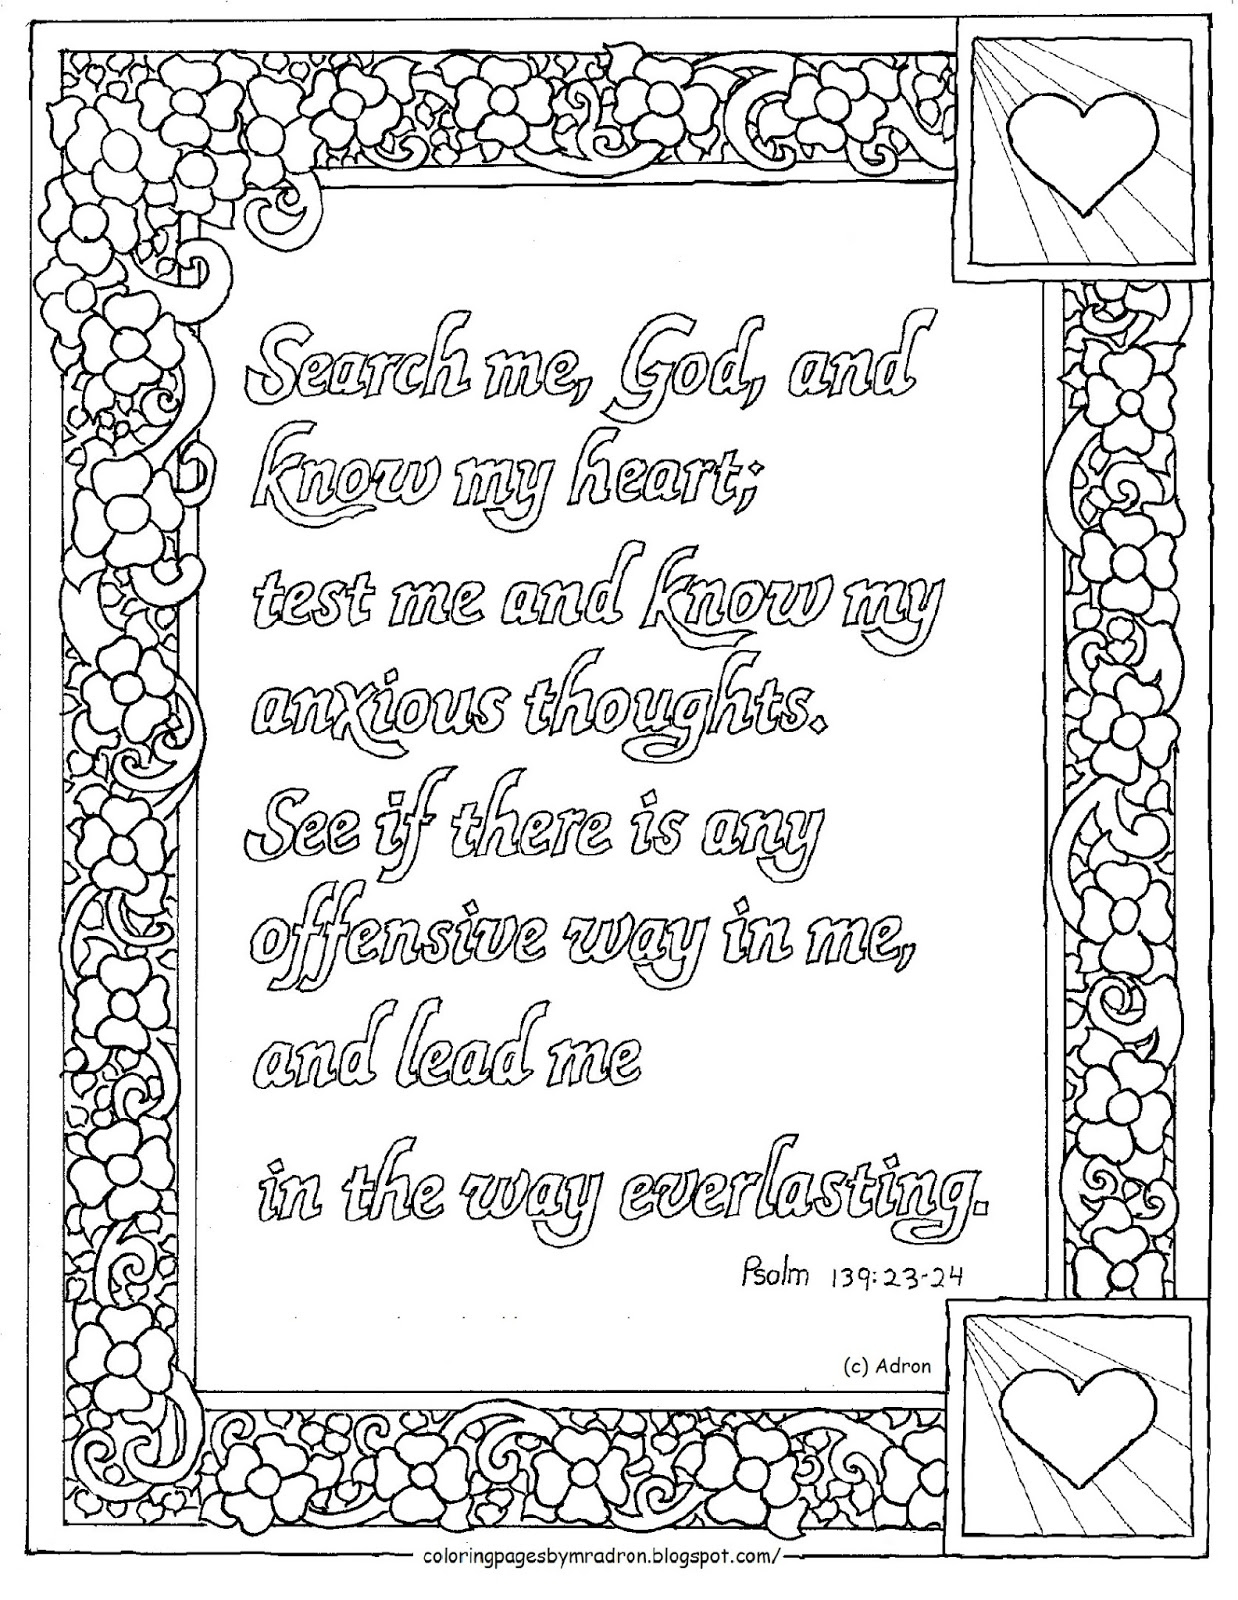 Coloring Pages For Kids By Mr Adron Printable Psalm 139 23 24 Coloring Page Search Me God